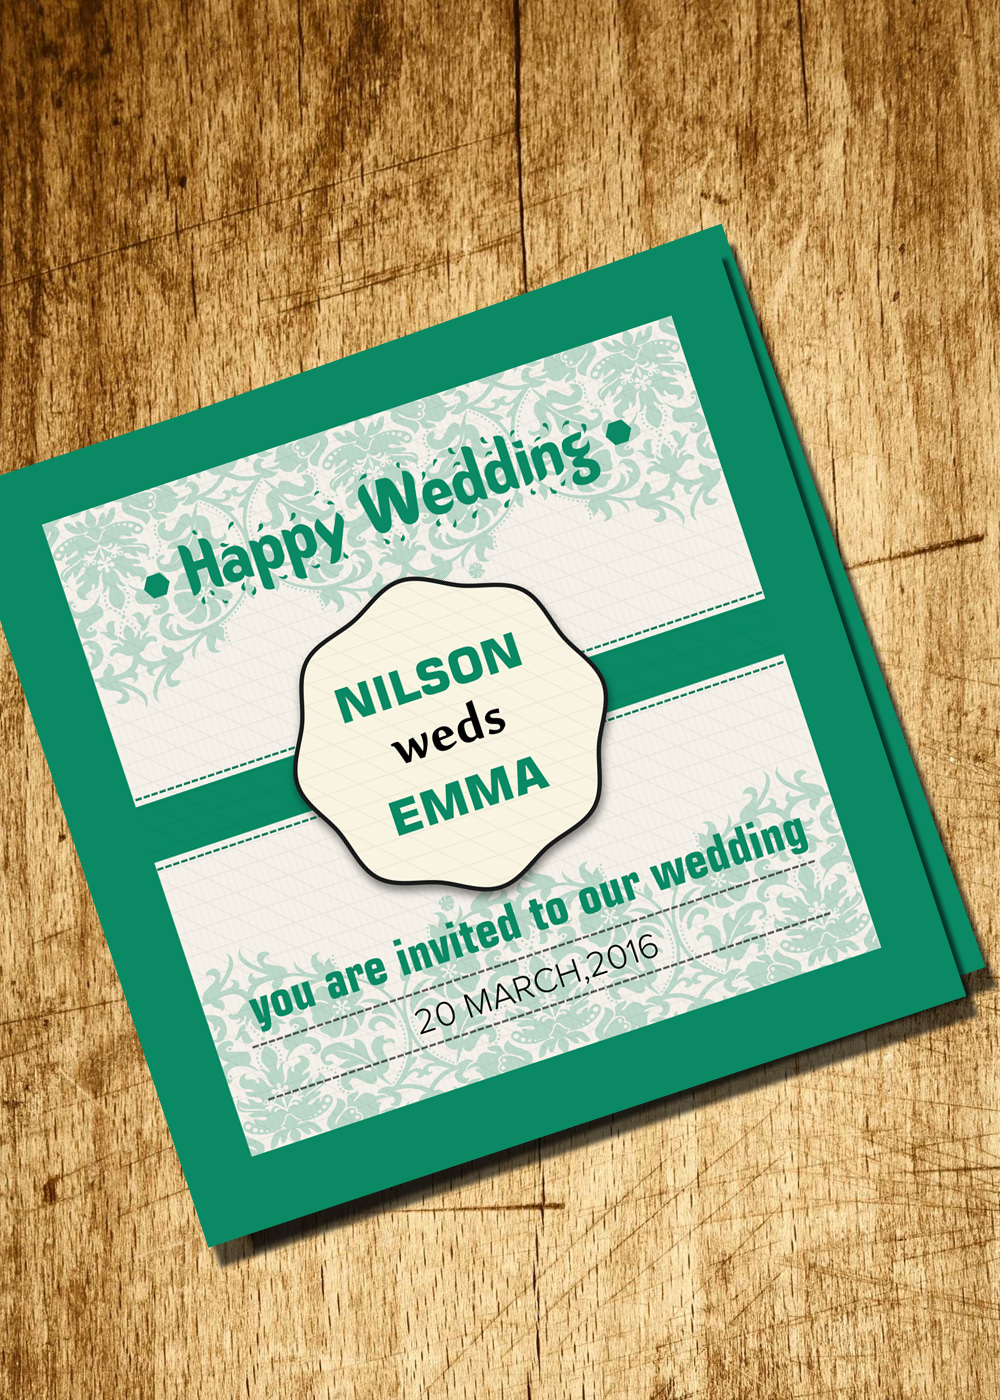 WEDDING-TEMPLATE